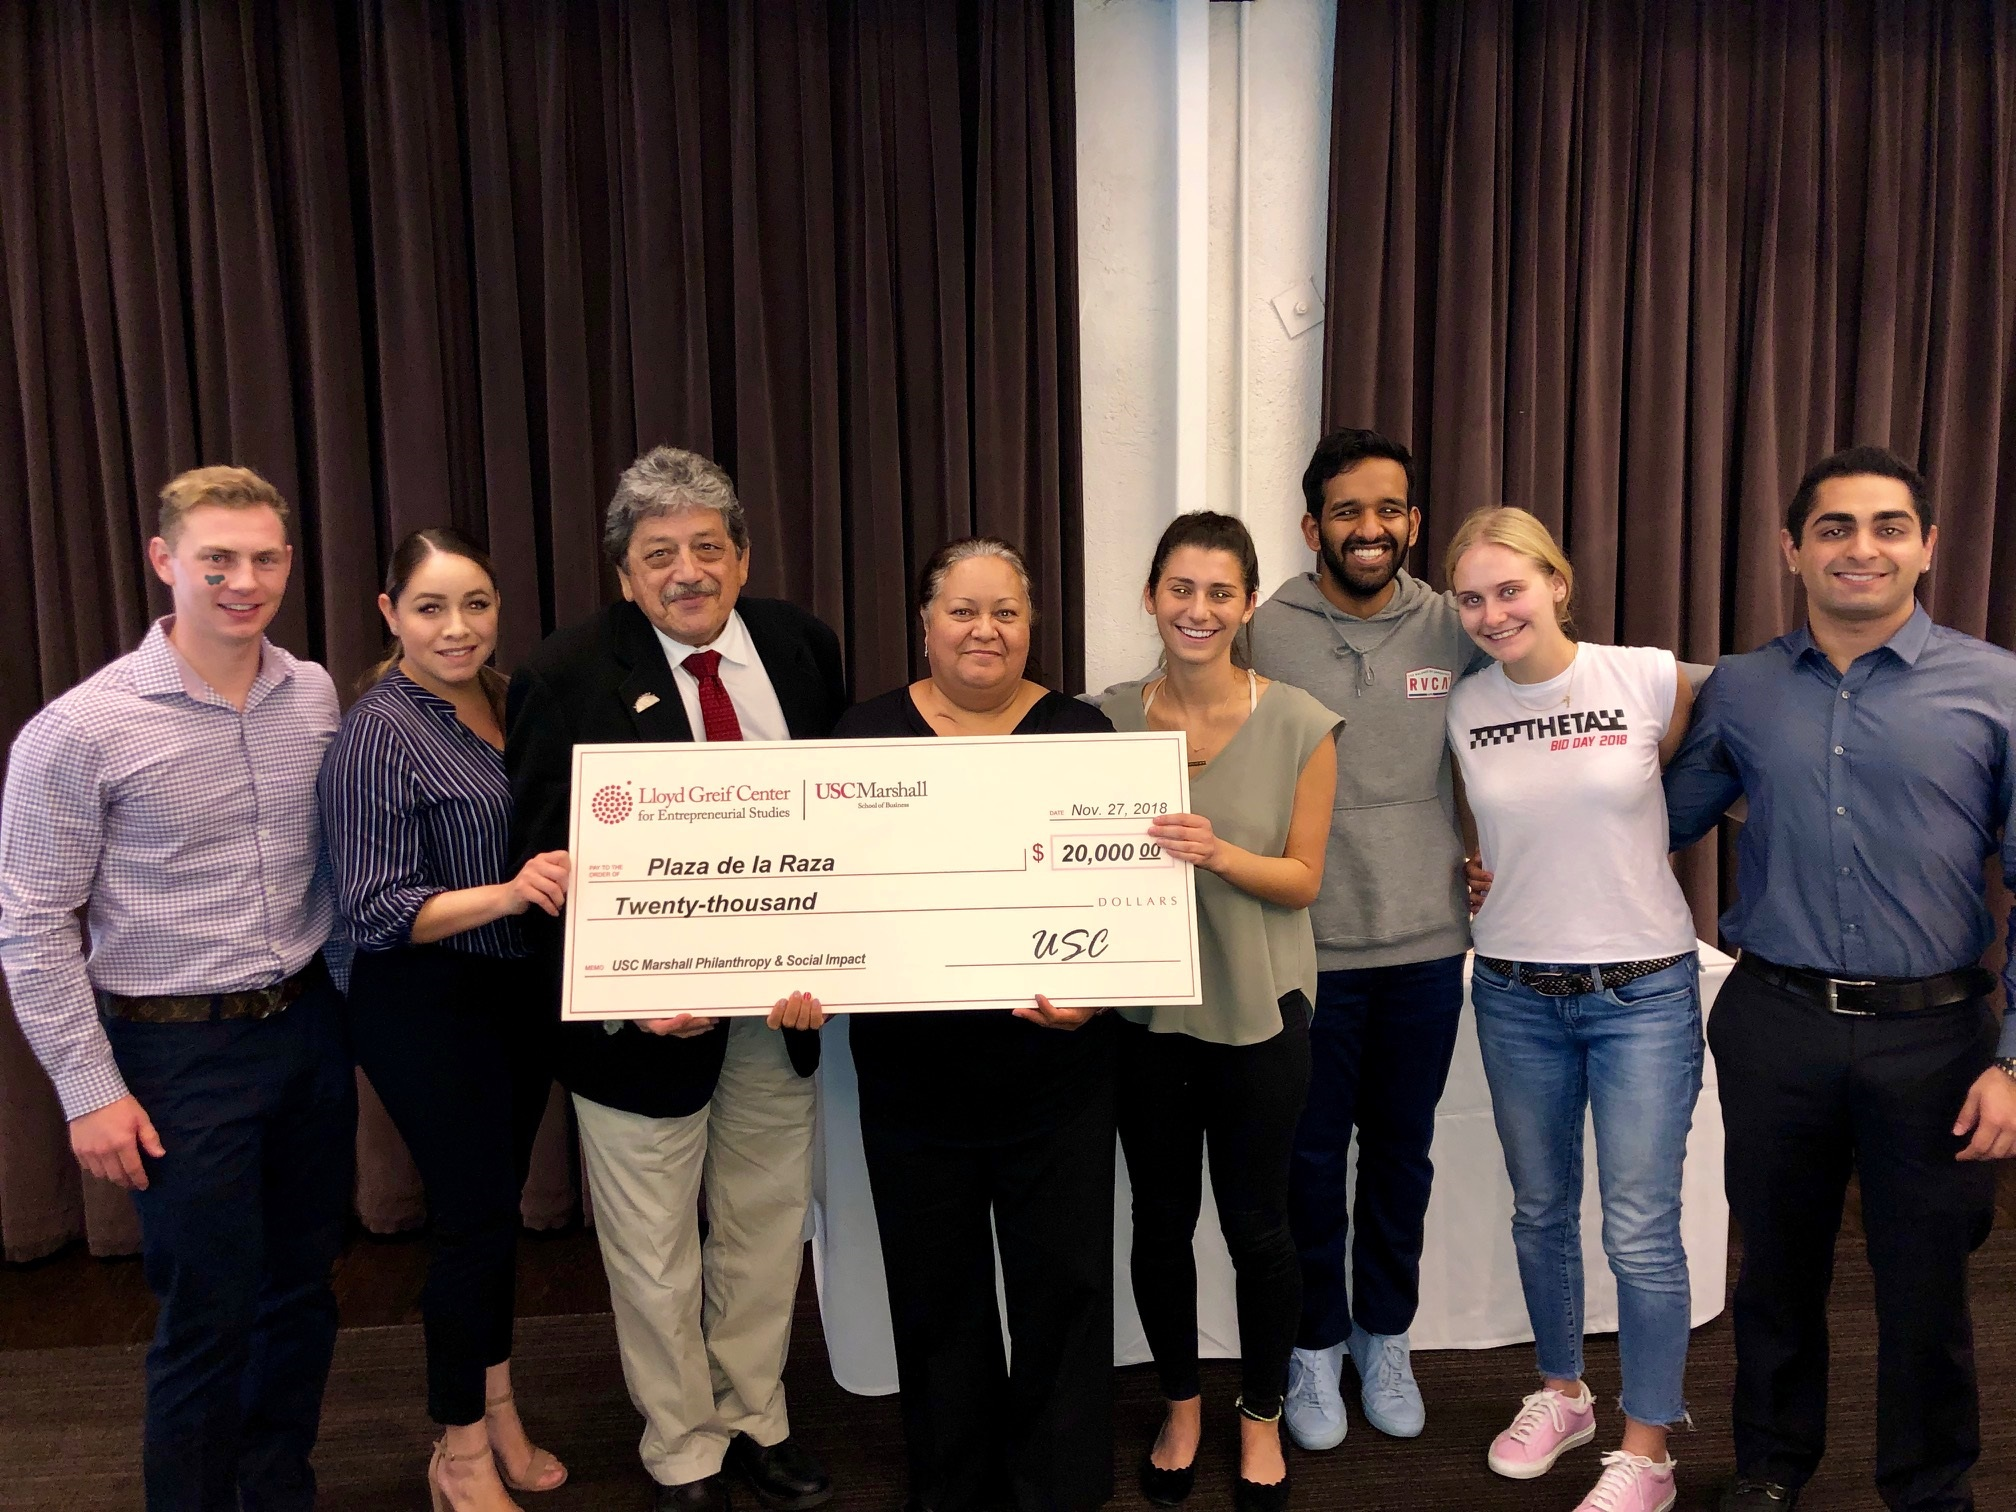 Plaza de la Raza wins social enterprise funding